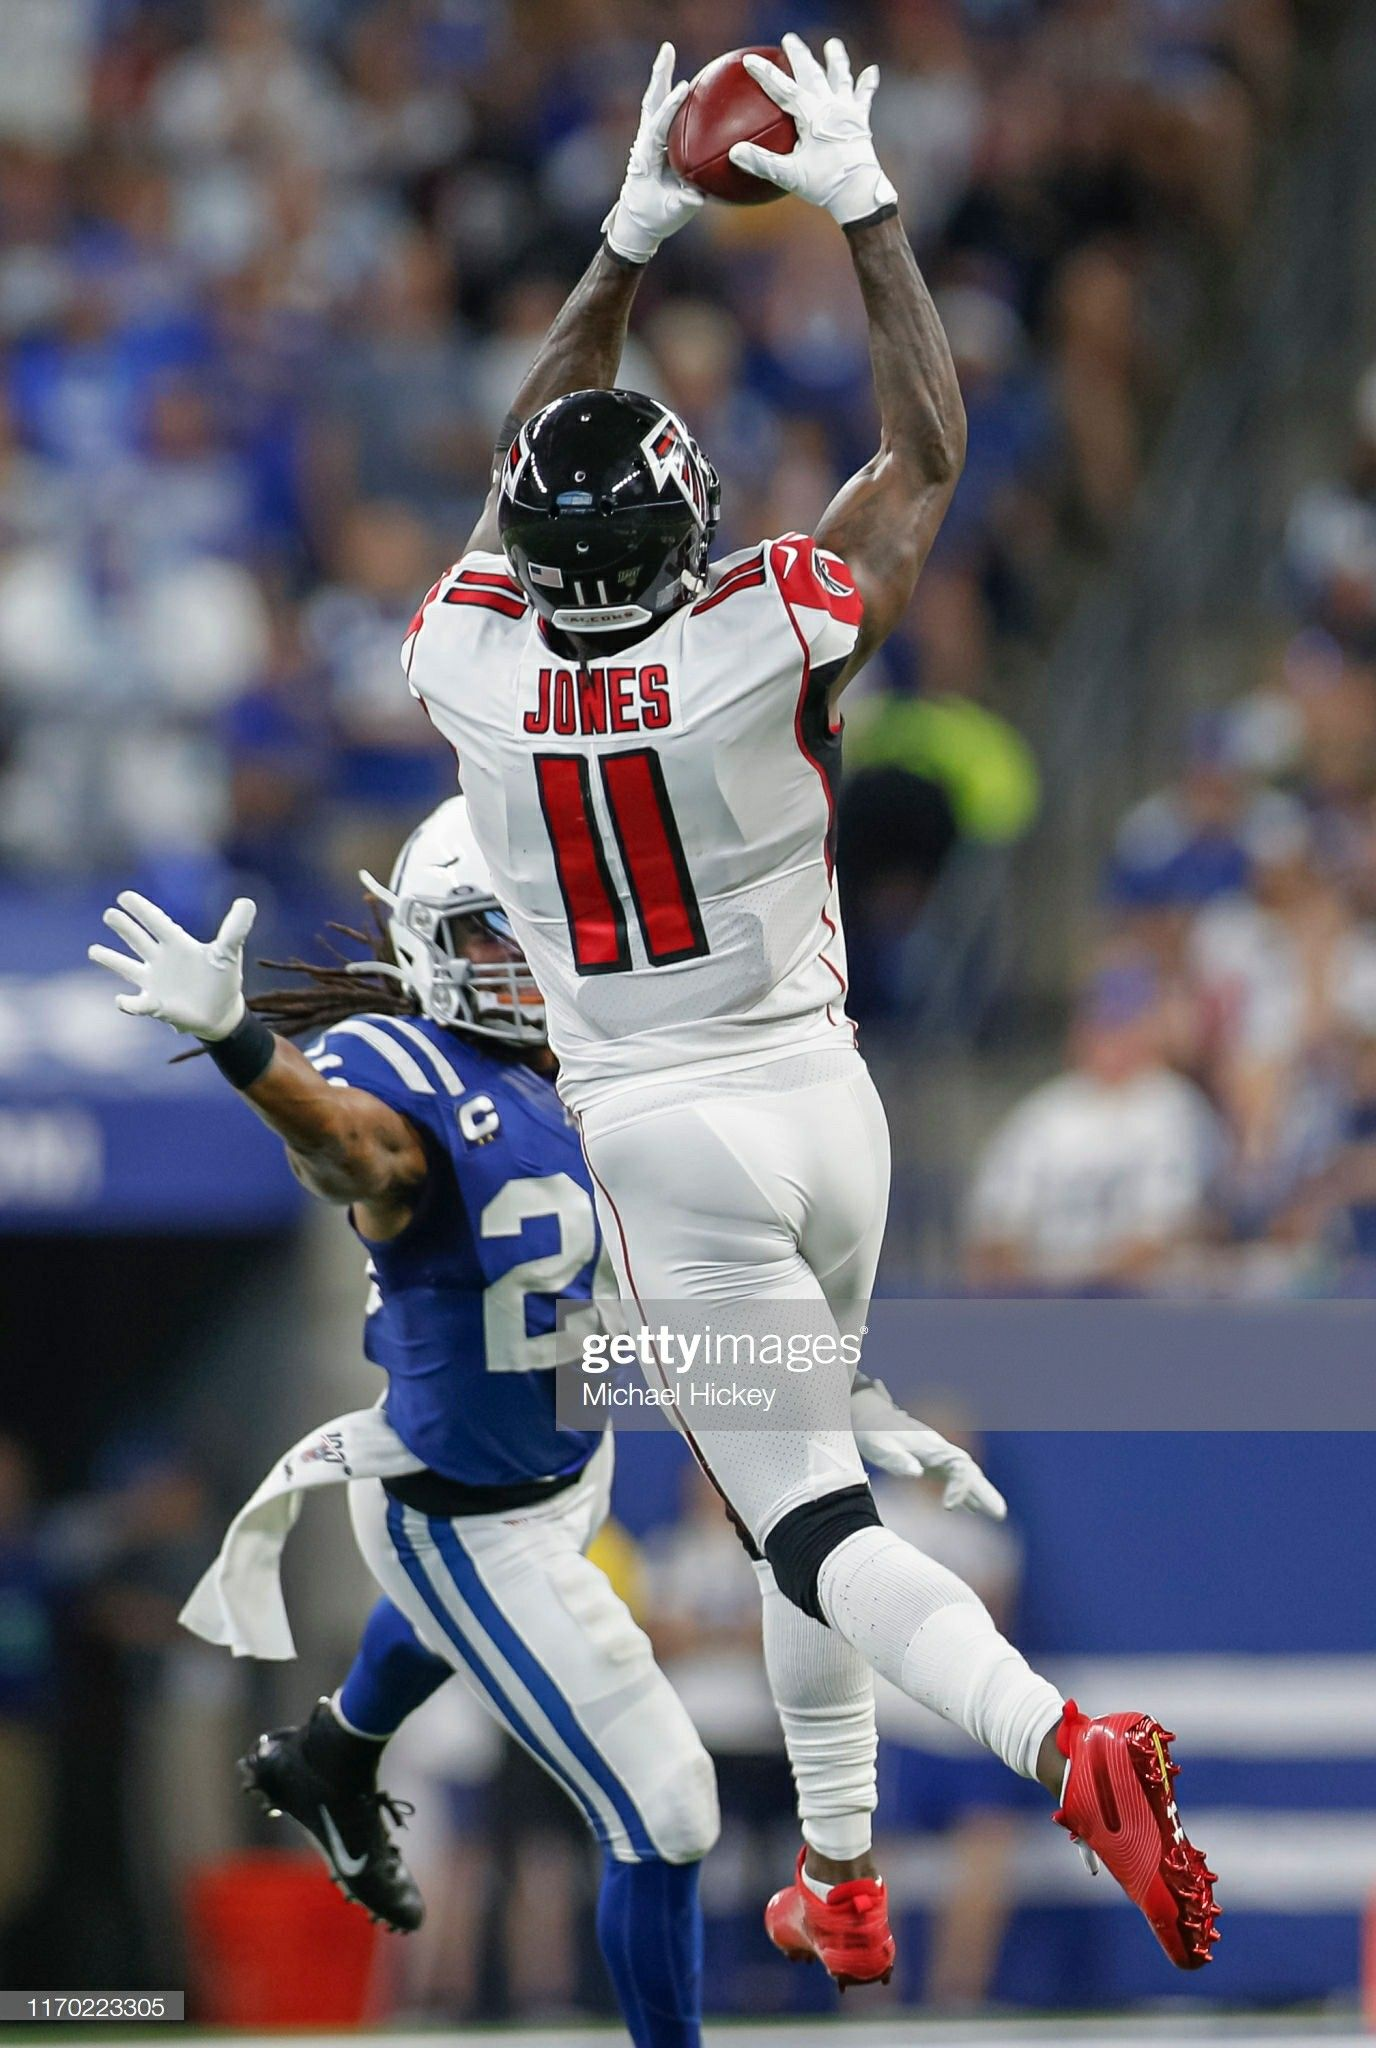 Julio Jones 11 Of The Atlanta Falcons Leaps For A Pass During The Second Half Against The Indianapolis Colts Julio Jones Nfl Football Wallpaper Football Swag